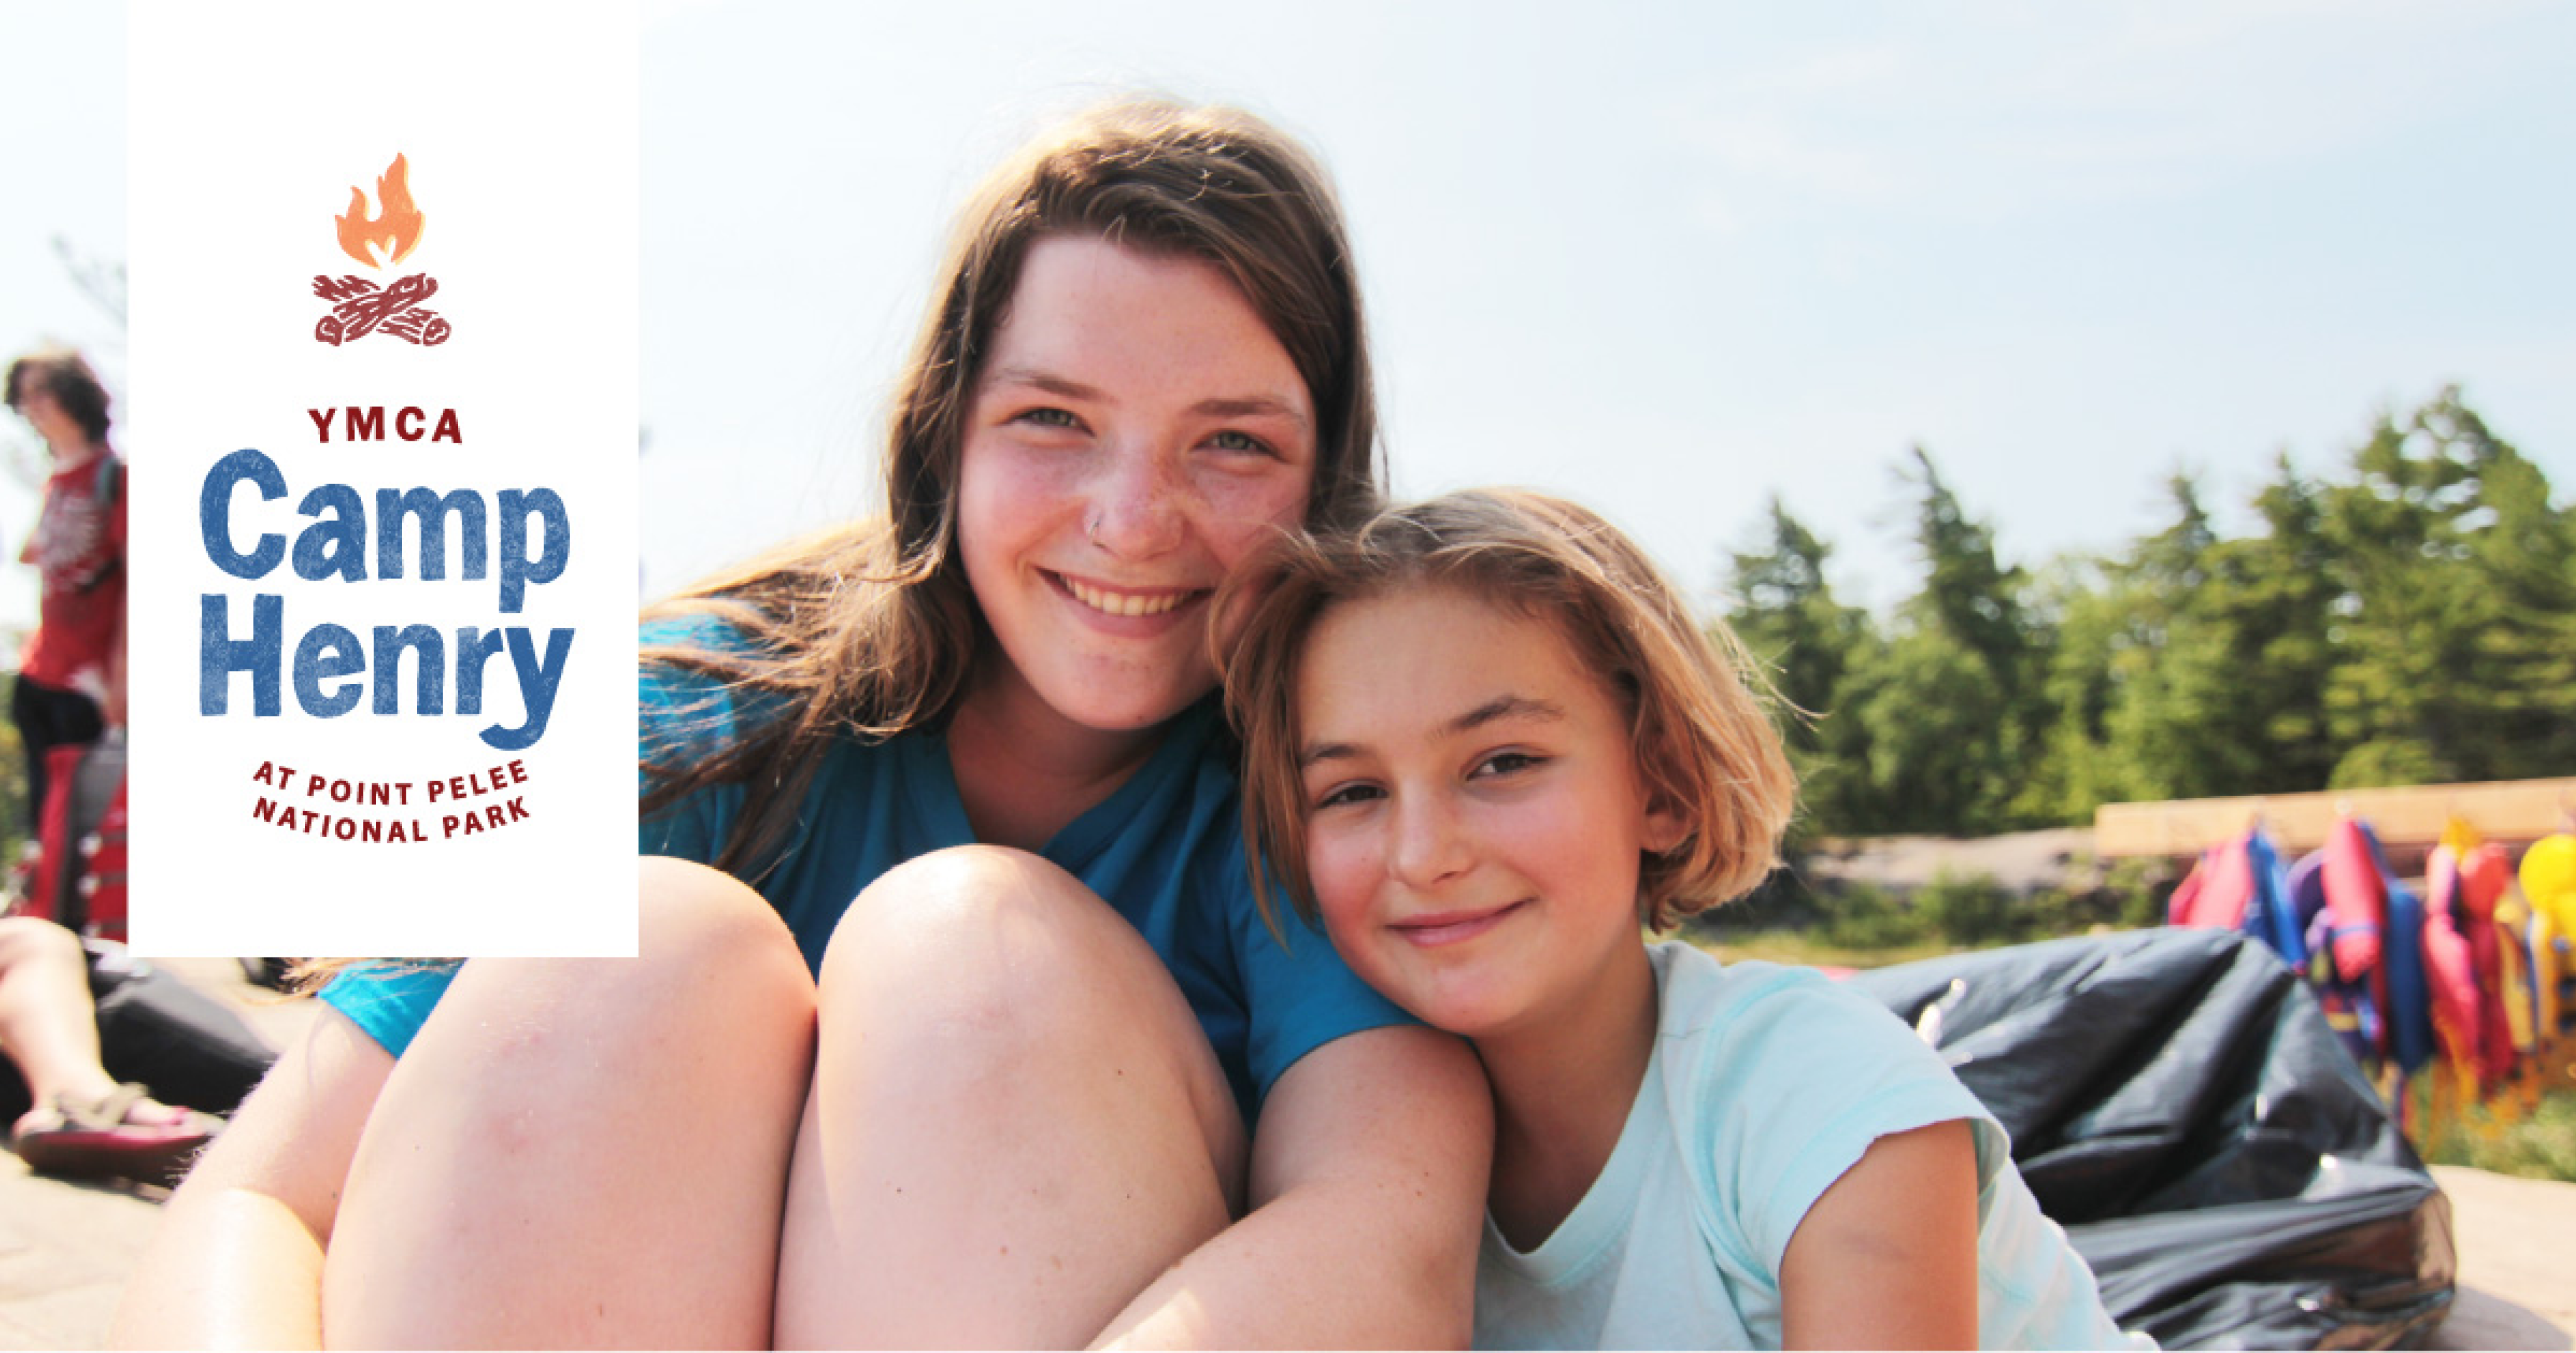 Camper and camp counsellor smiling at the beach